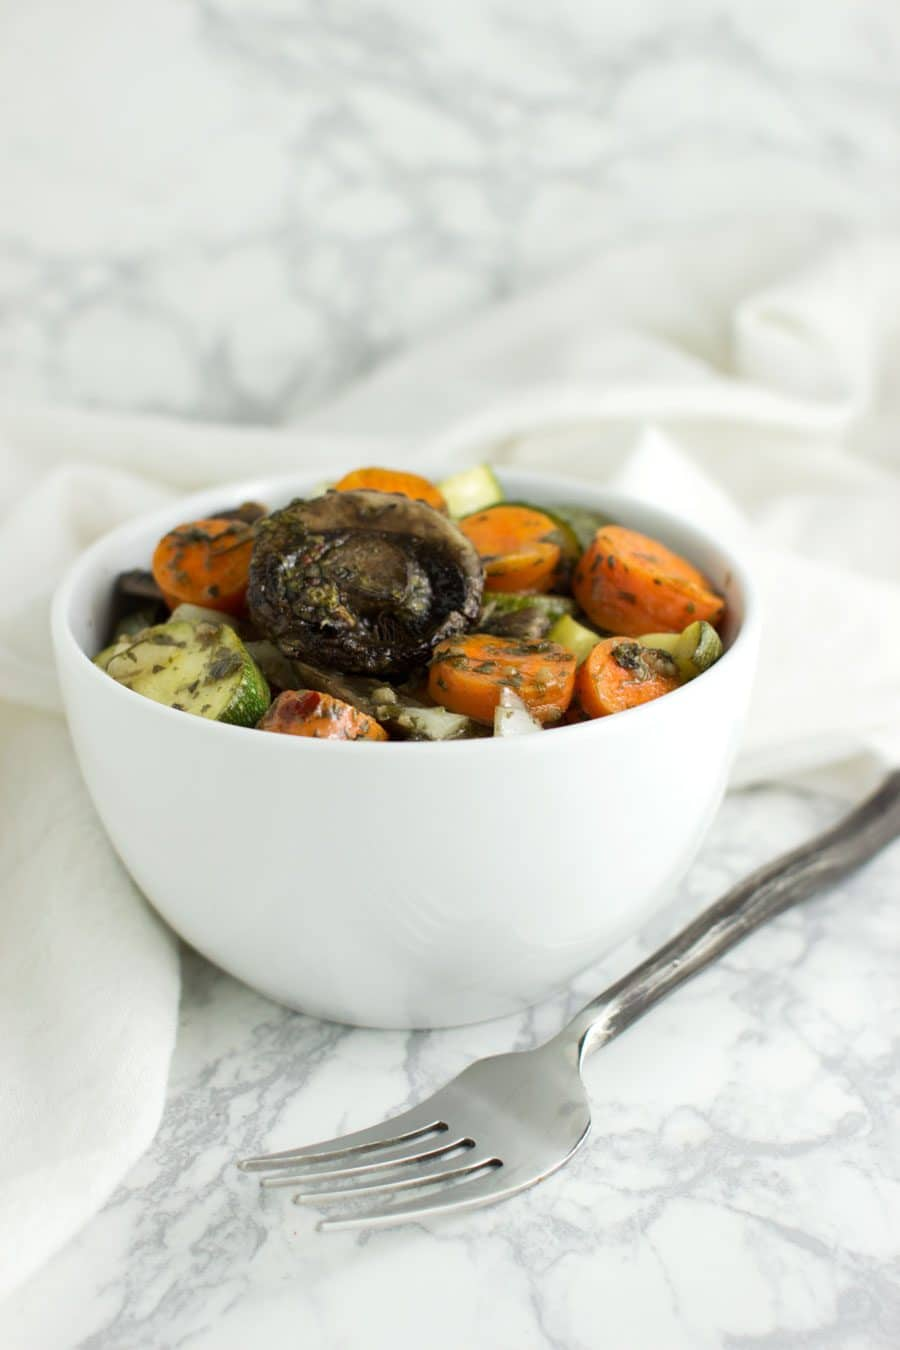 Roasted Mixed Vegetables with Charmoula Sauce recipe from acleanplate.com #aip #paleo #autoimmuneprotocol